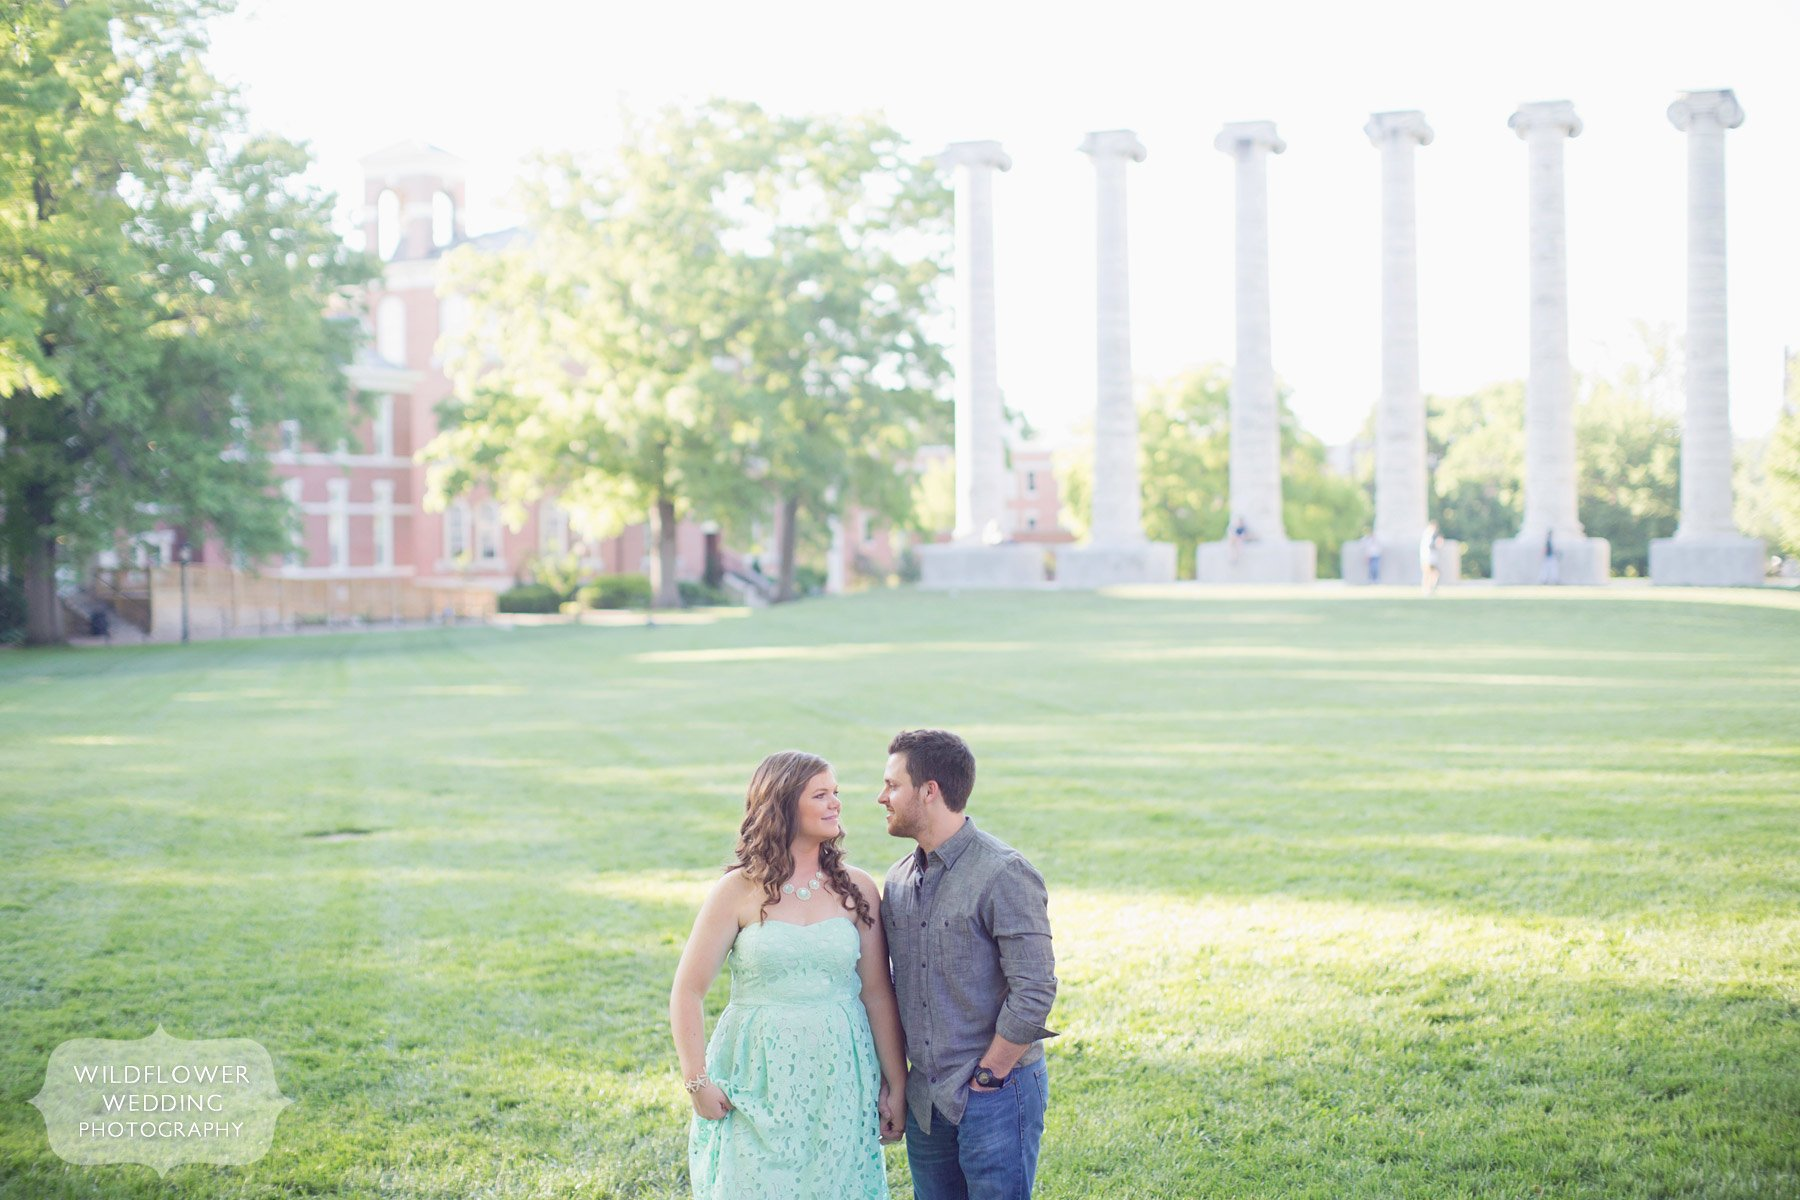 Photo of an engaged couple in front of the historic columns on the quadrangle of Mizzou campus in Columbia, MO.